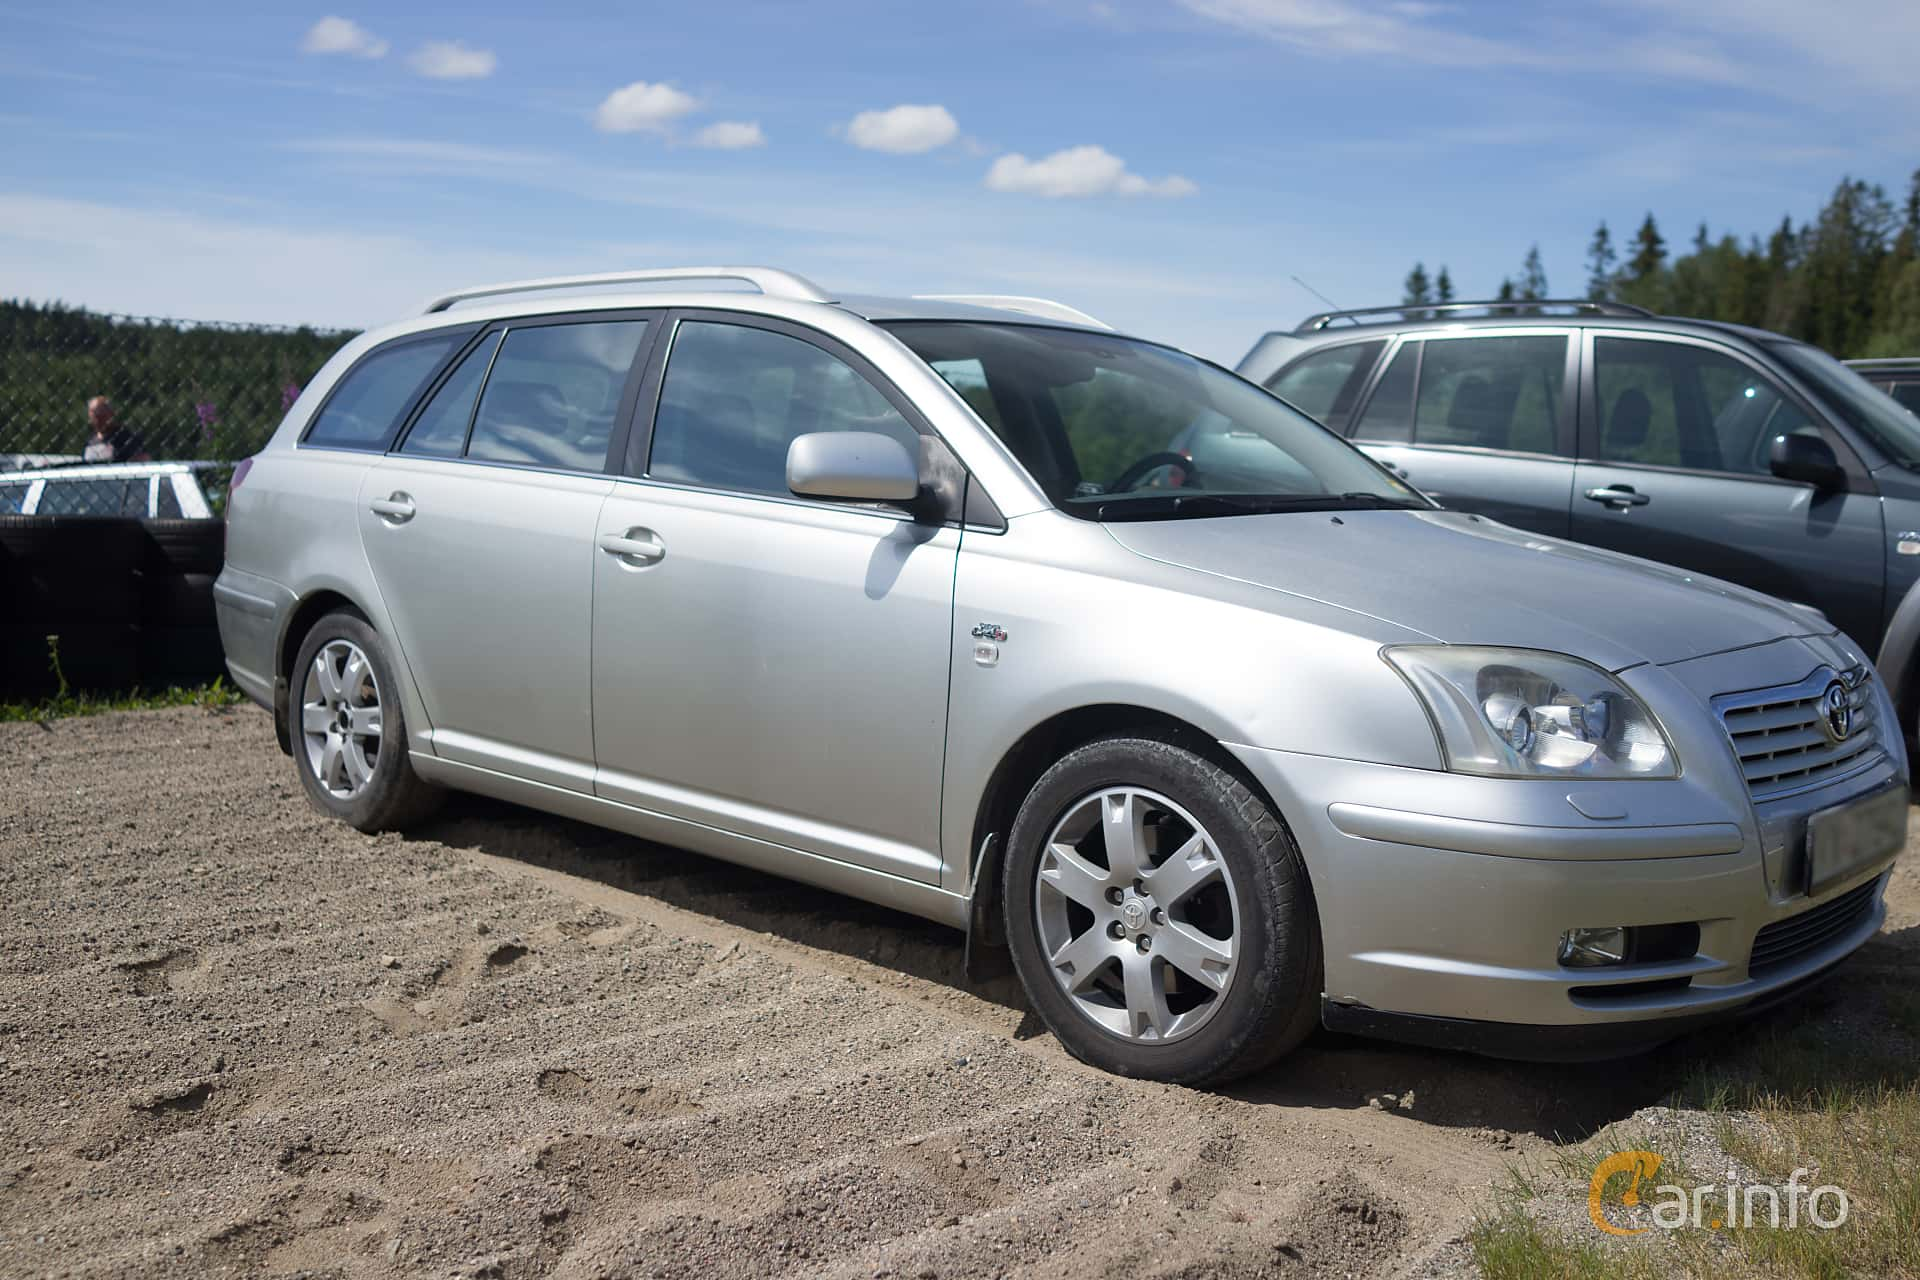 toyota avensis combi generation t25 2 0 d 4d manual 5 speed. Black Bedroom Furniture Sets. Home Design Ideas